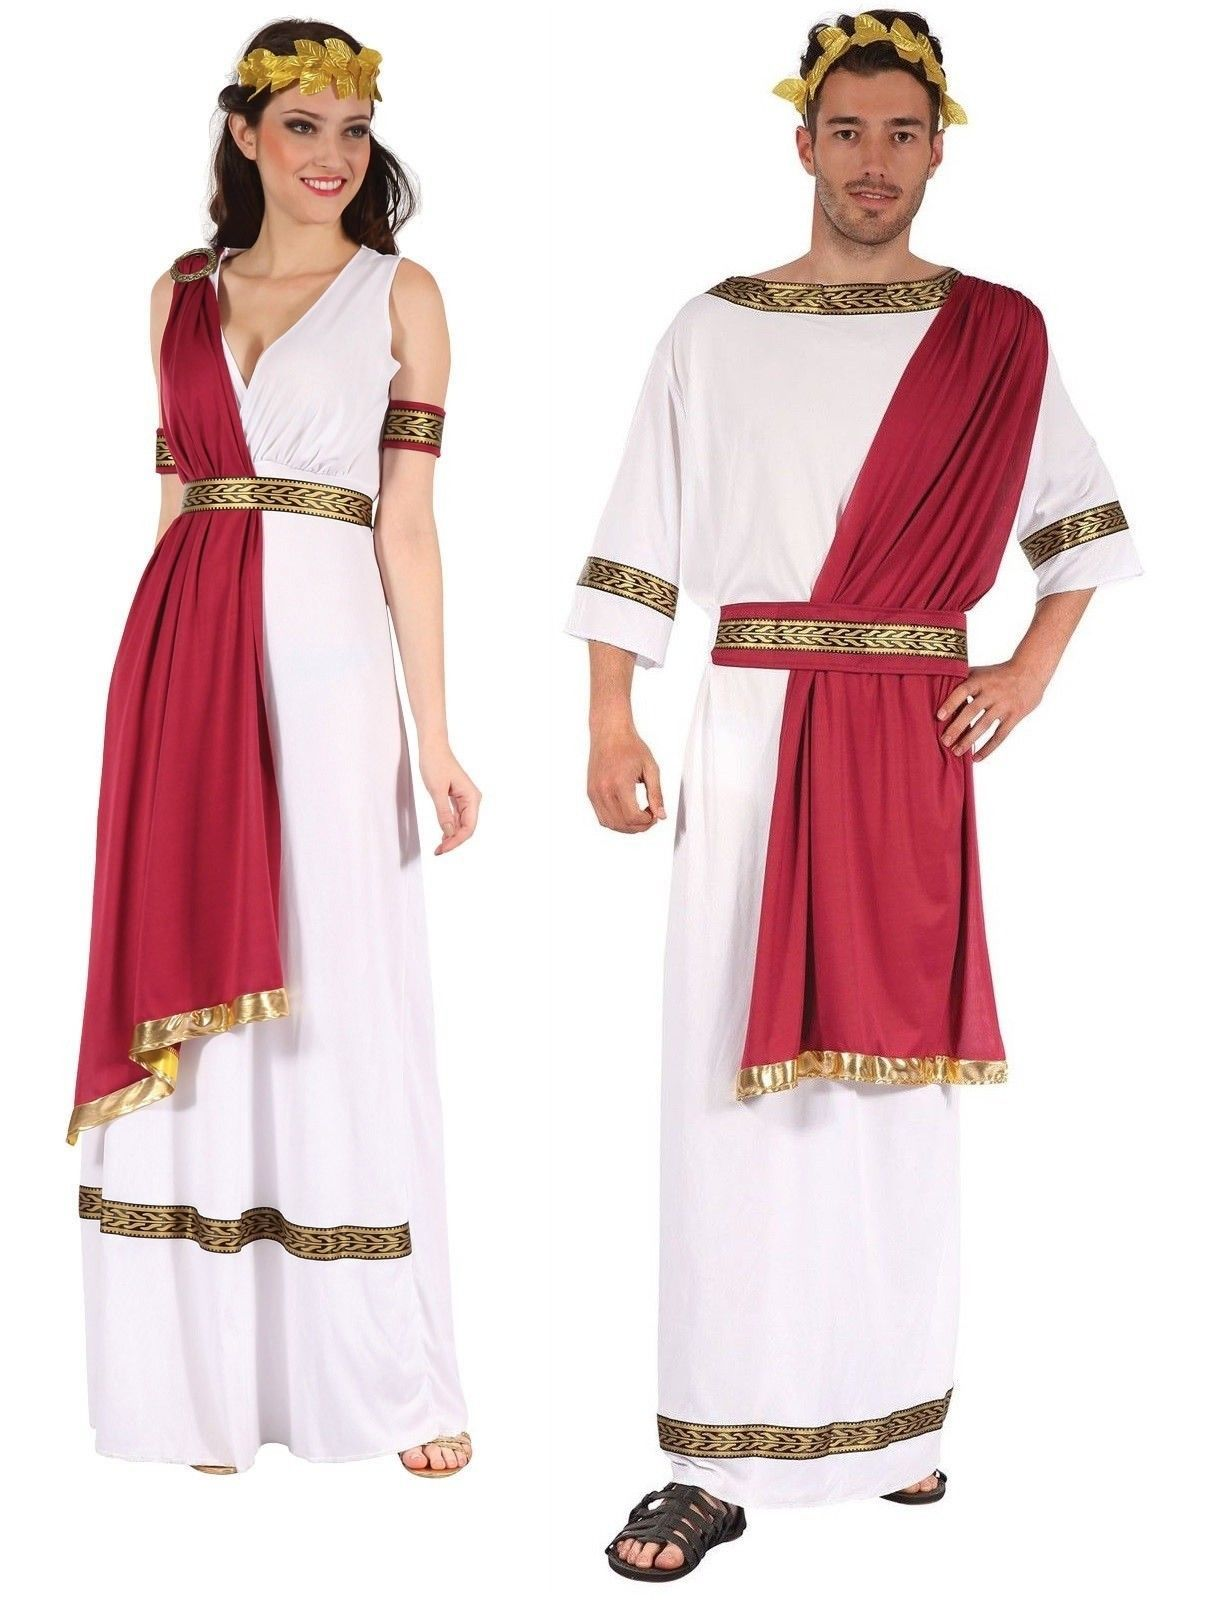 aa2f761b0 Greek GOD OR Goddess Costume Great Toga Fancy Dress Headpiece RED White  Adult | eBay